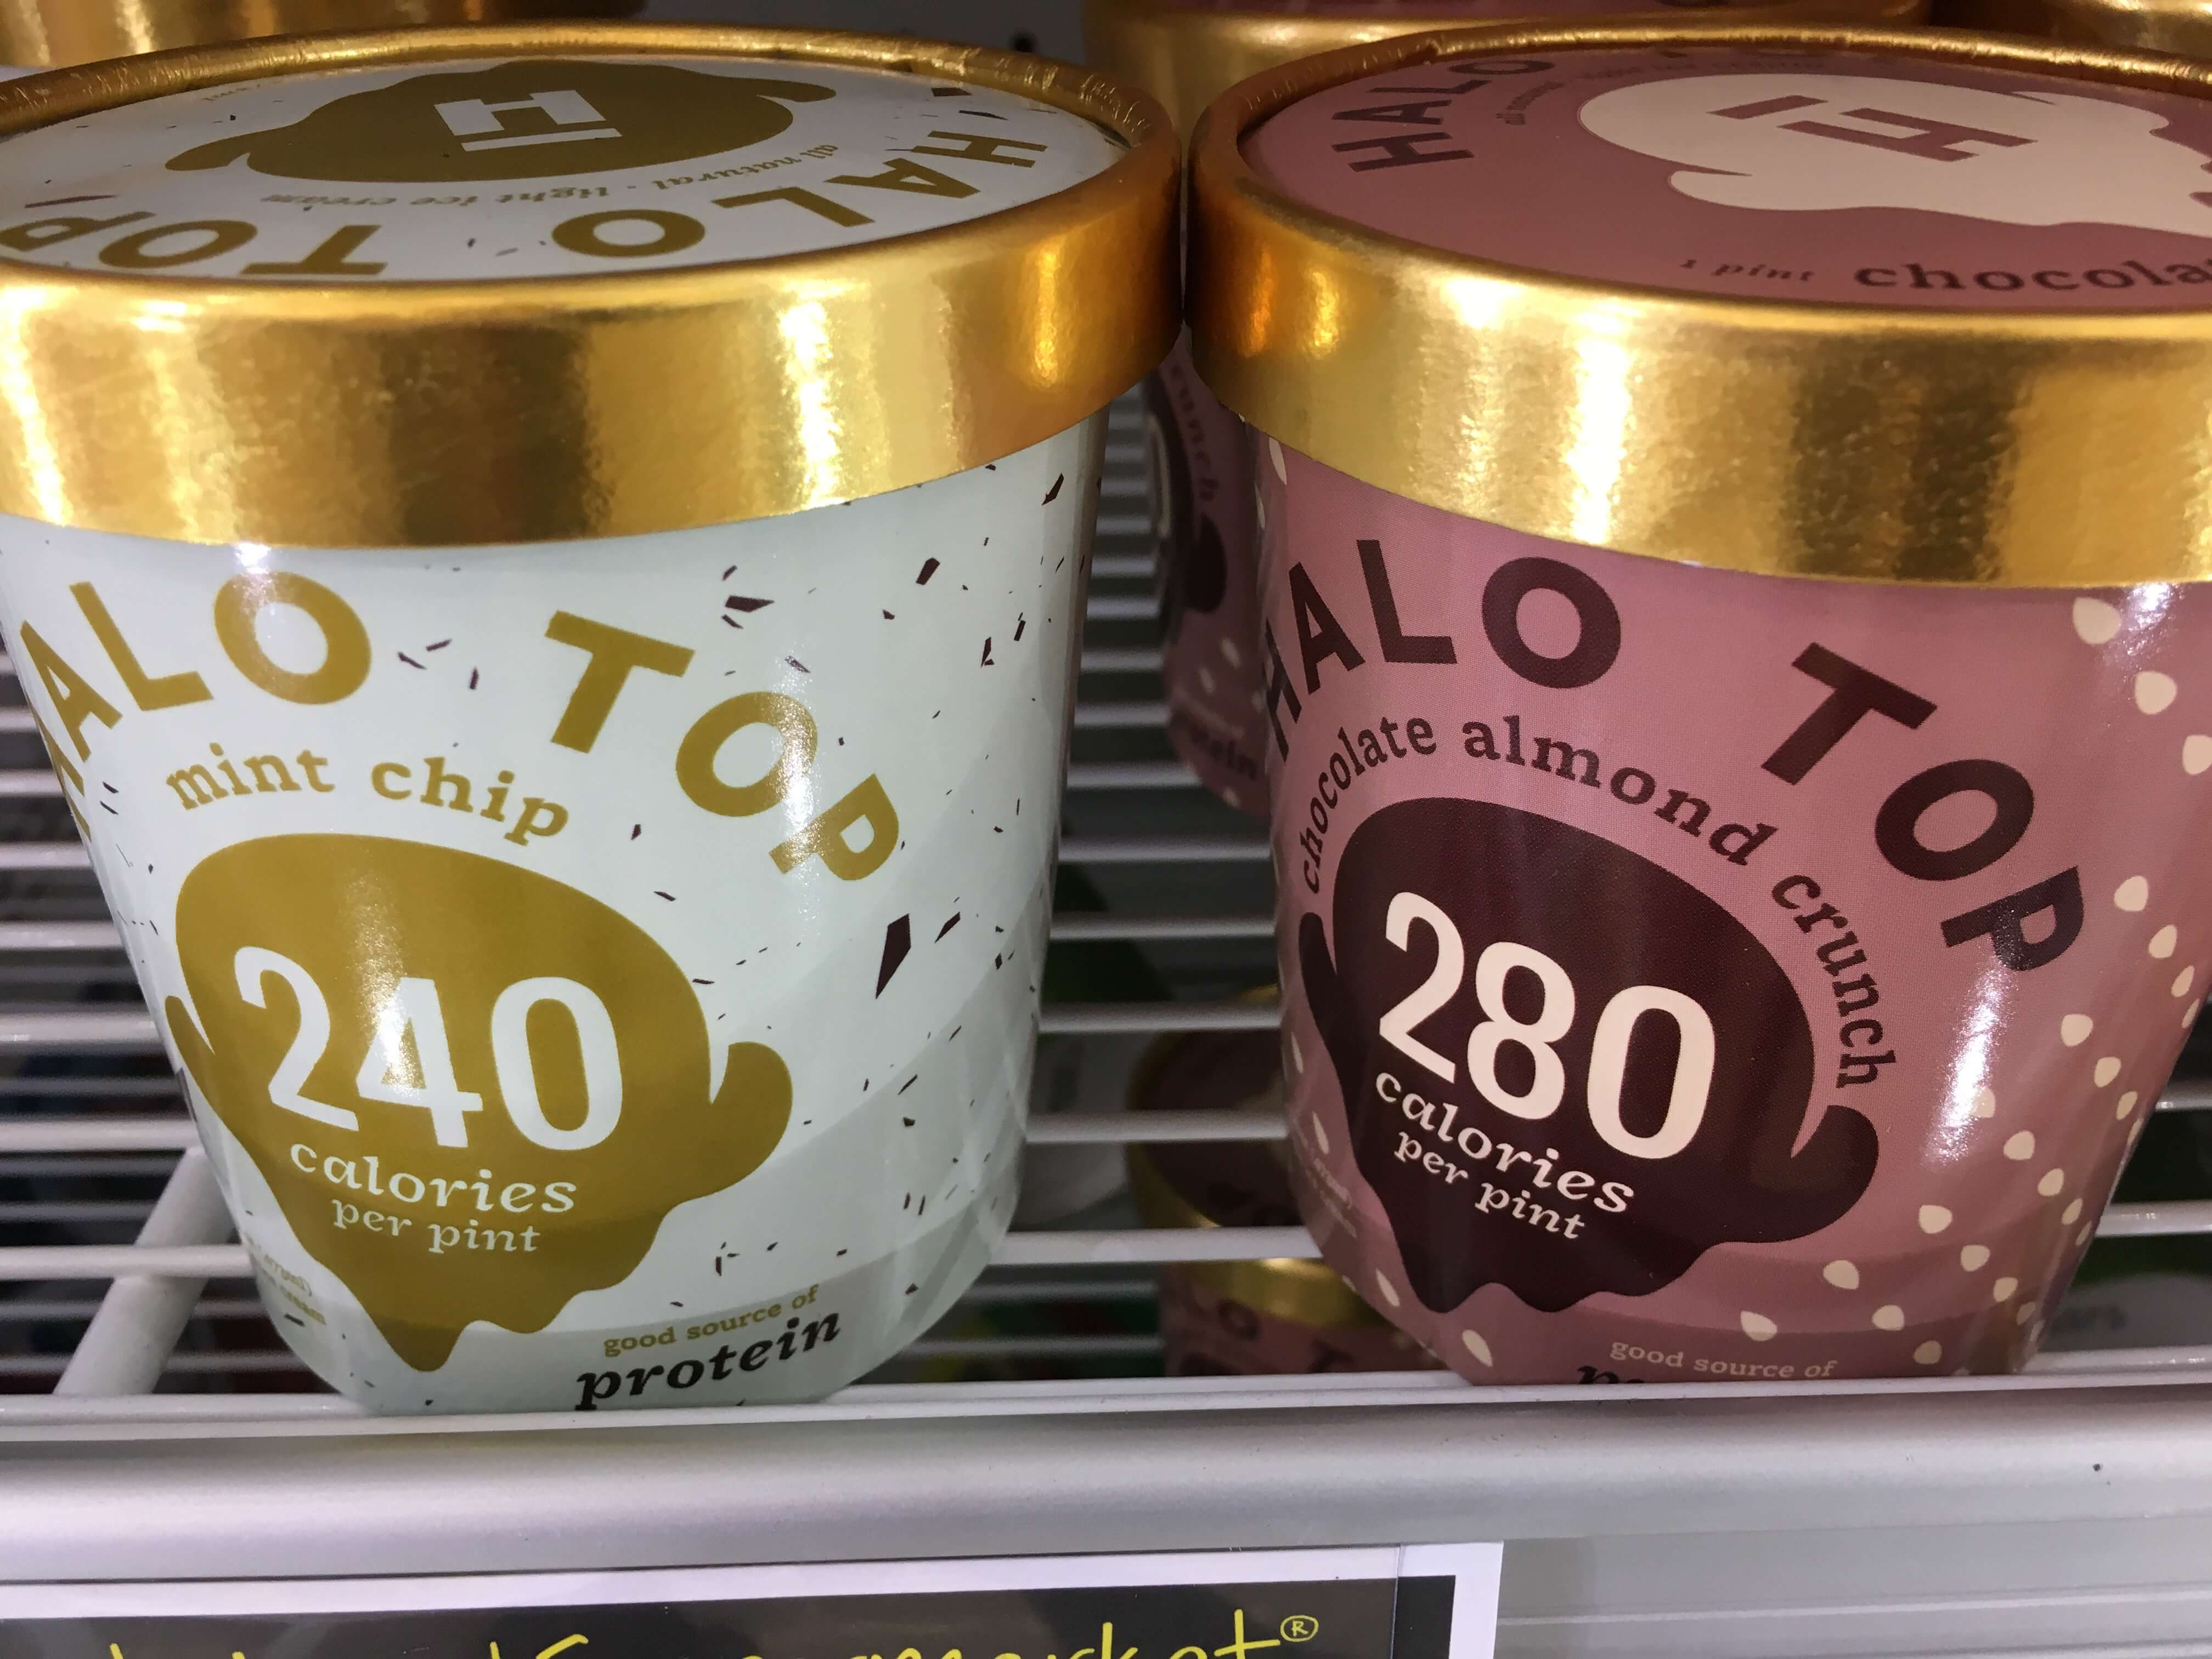 Halo Top Ice Cream Just $0 88 at Acme RebateLiving Rich With Coupons